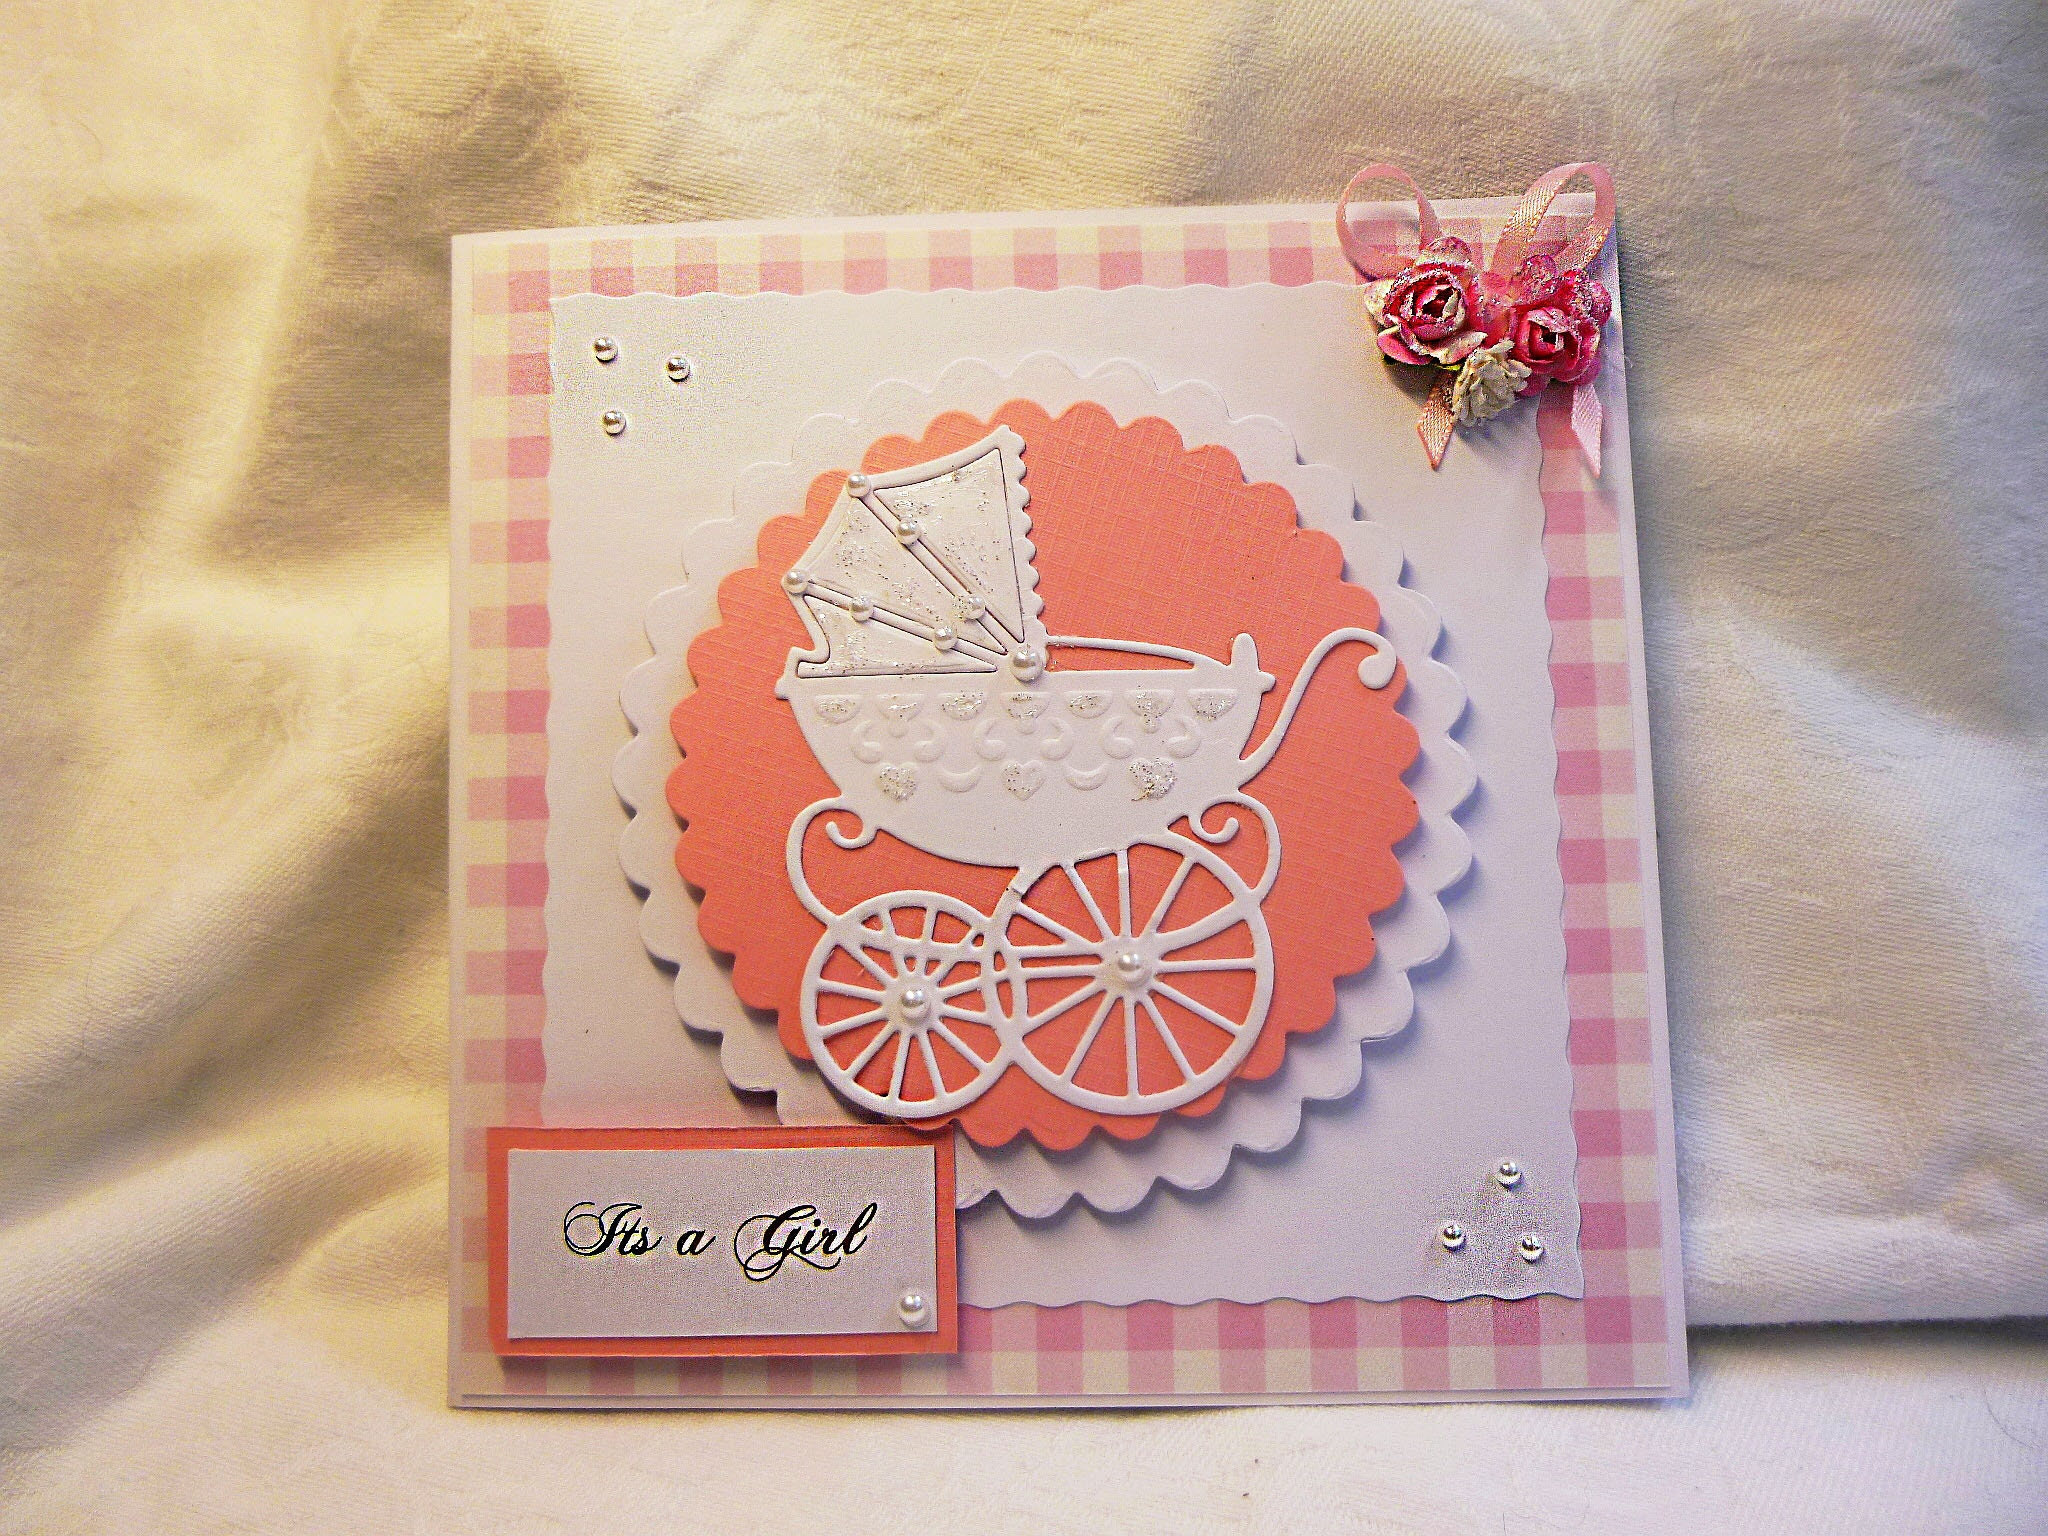 New born baby girl card just arrived new arrival card baby shower new born baby girl card just arrived new arrival card baby shower card card for baby girl pink and white baby card baby girl card m4hsunfo